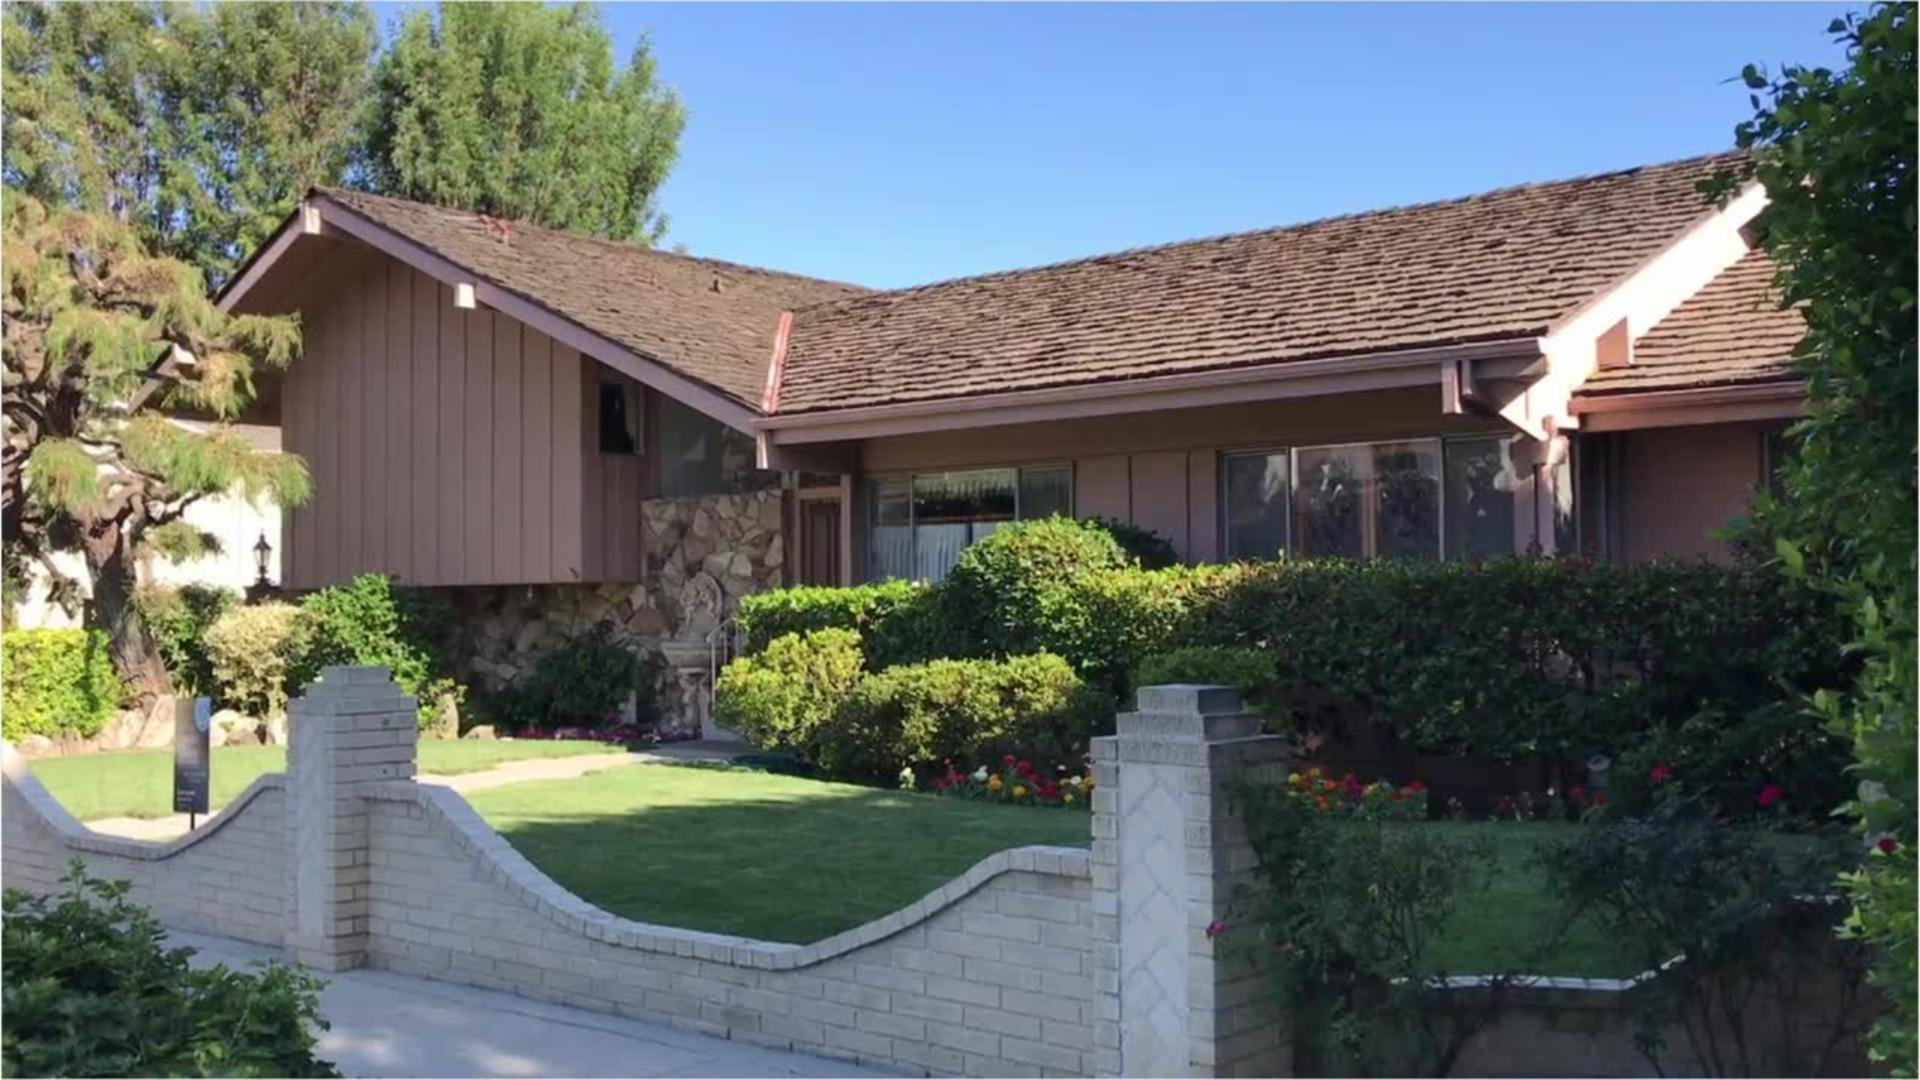 Entertainment - HGTV Buys Brady Bunch Home - Plans on Restoring it to 1970s Glory